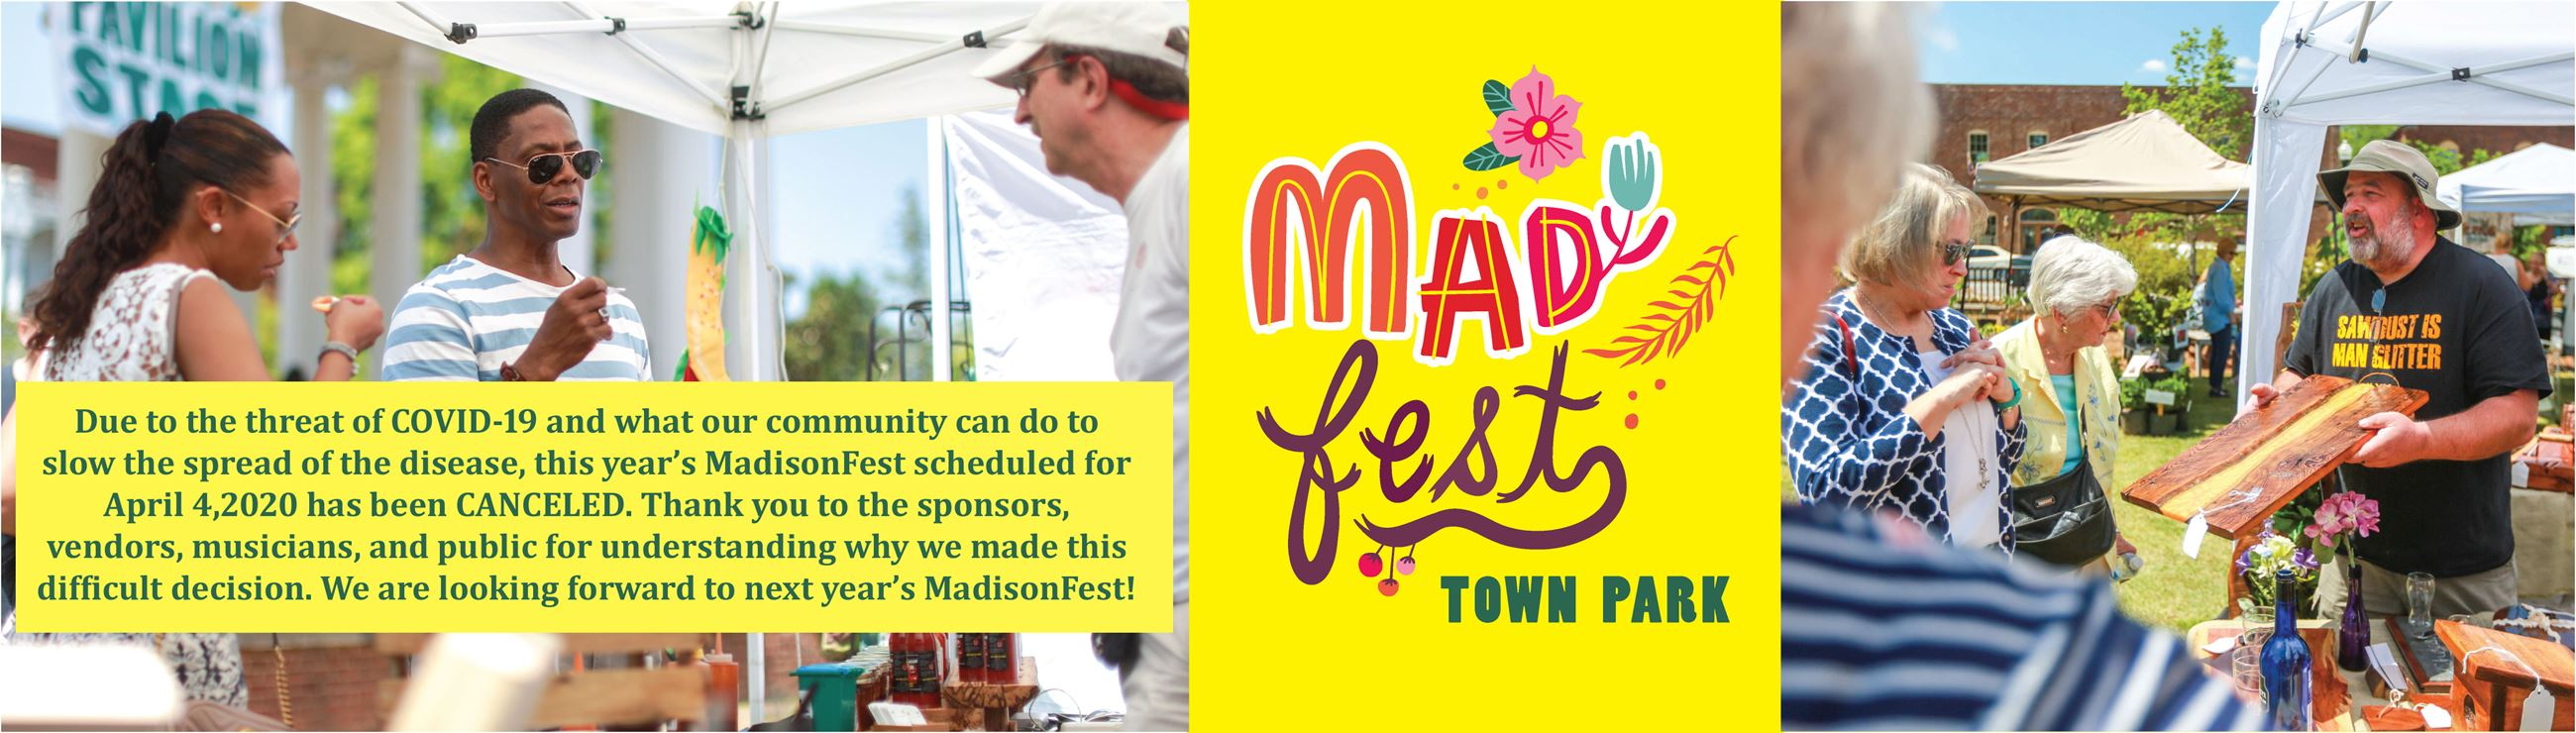 Madison Fest Canceled